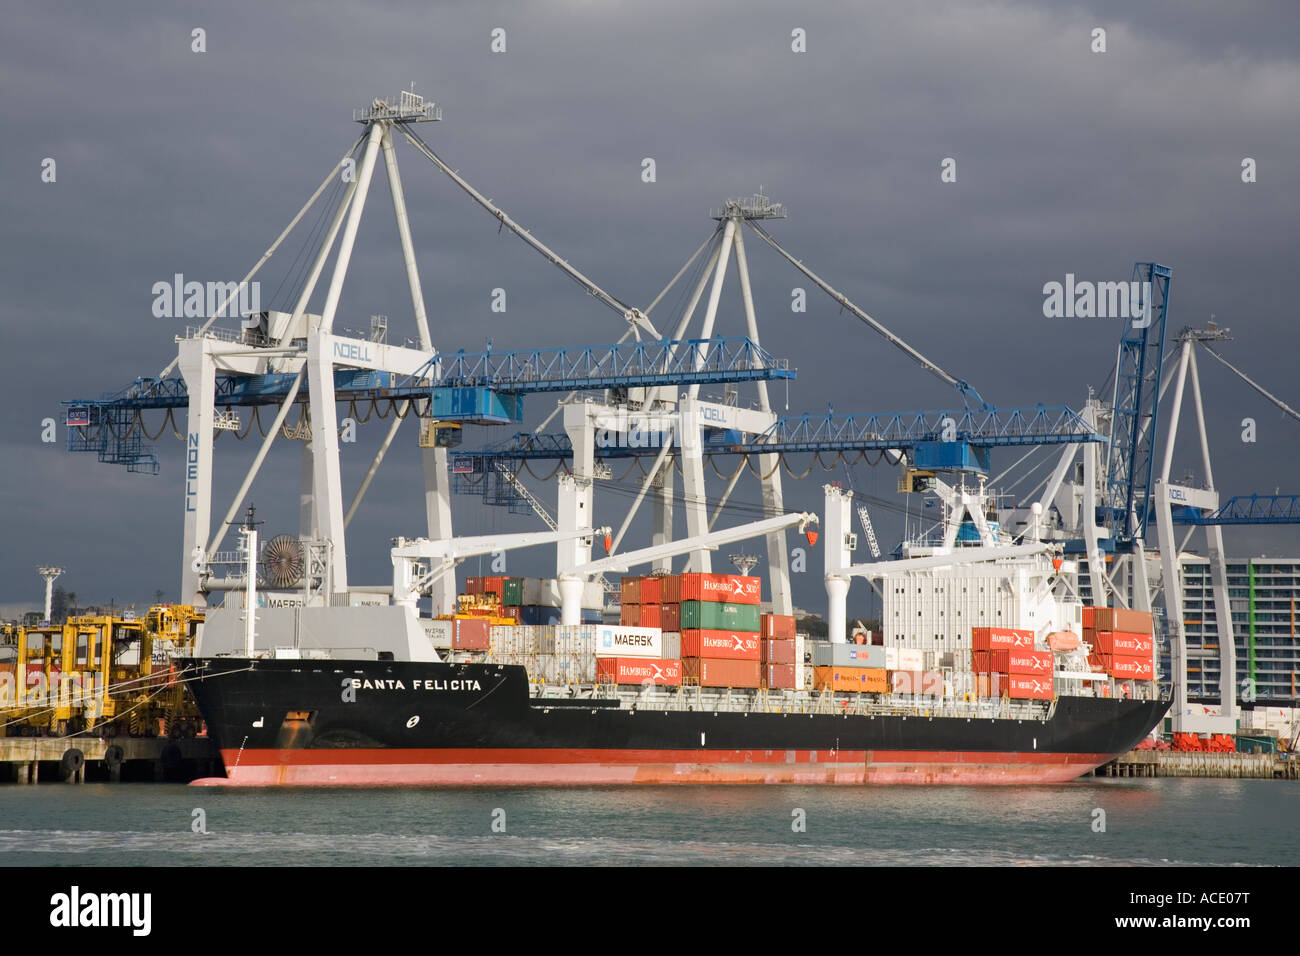 Auckland North Island New Zealand Container ship berthed by wharf in port on eastern waterfront from Waitemata Harbour - Stock Image